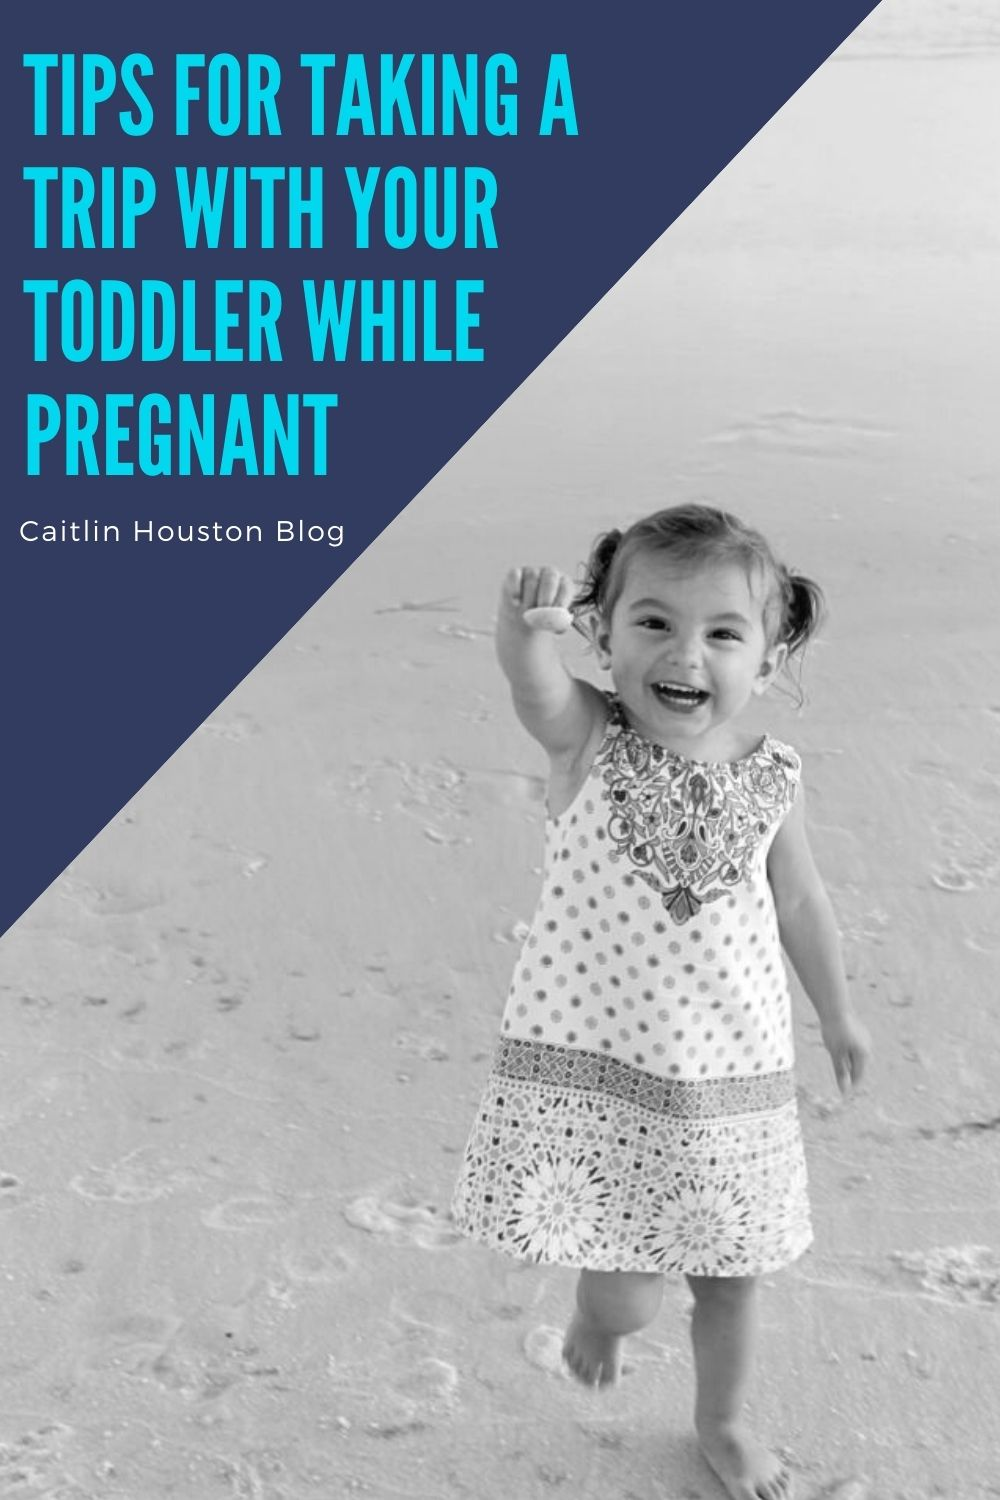 Tips for Taking a Trip with Your Toddler While Pregnant